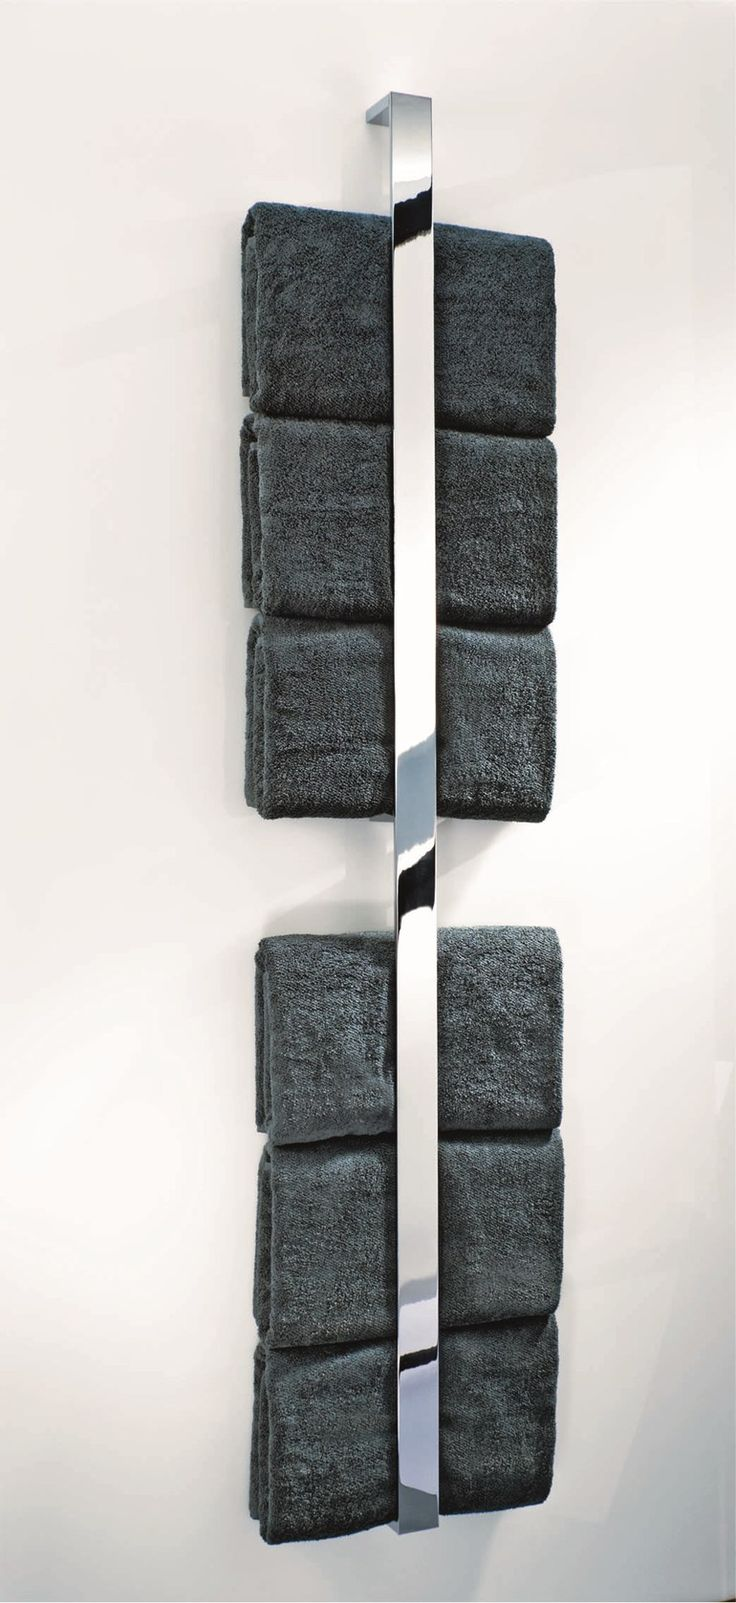 Chrome plated towel rack BK HL Brick Collection by DECOR WALTHER